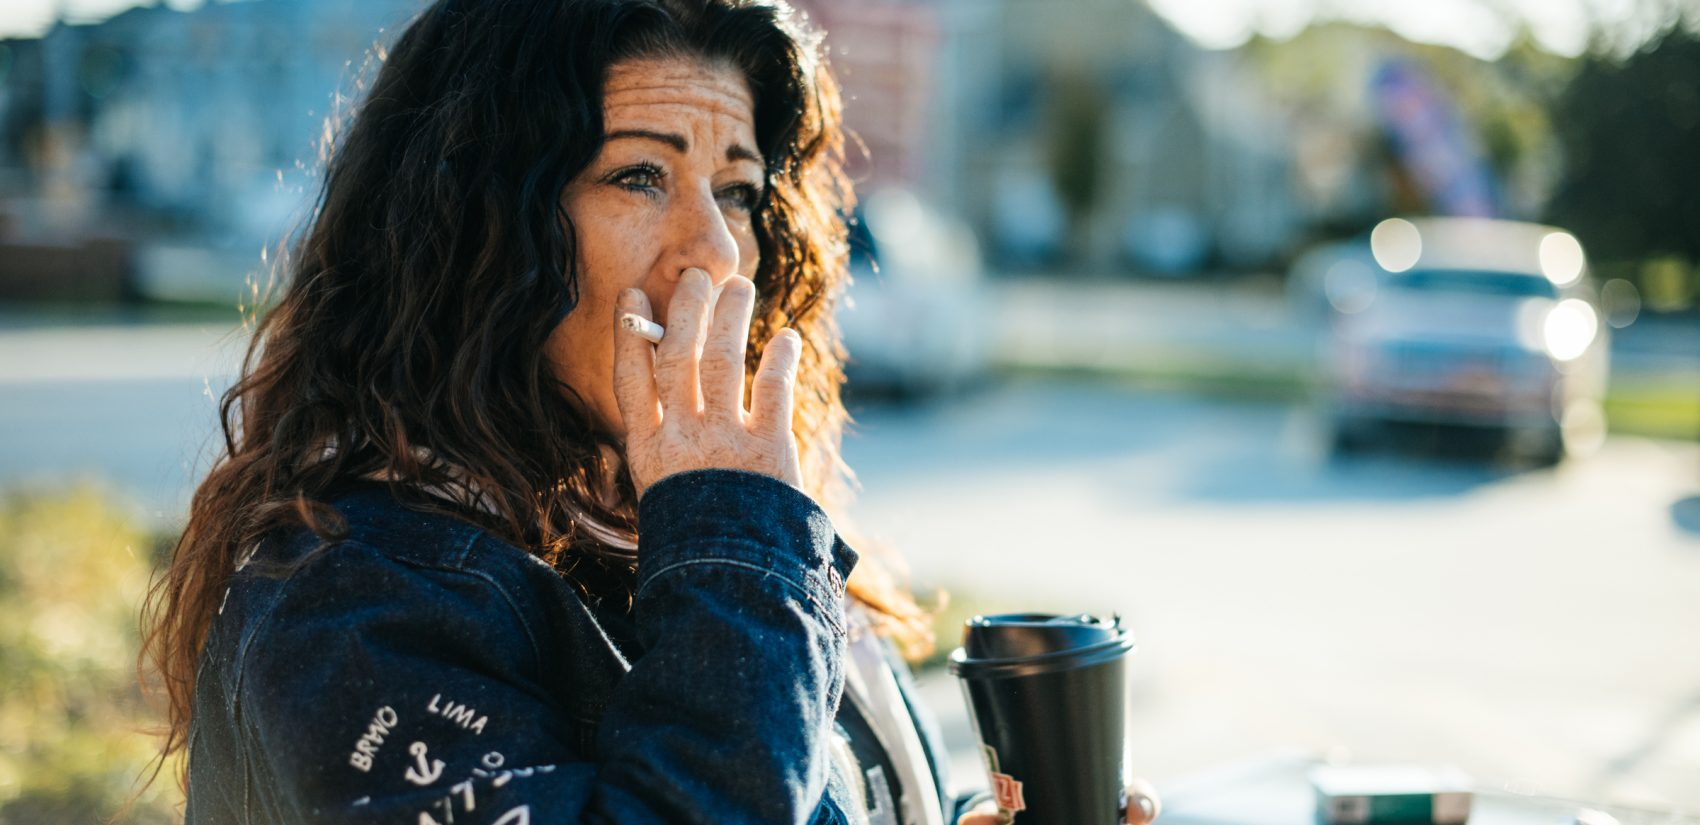 Redina pauses for a few minutes outside of the Sheetz in Shippensburg to sip her coffee and smoke a cigarette.